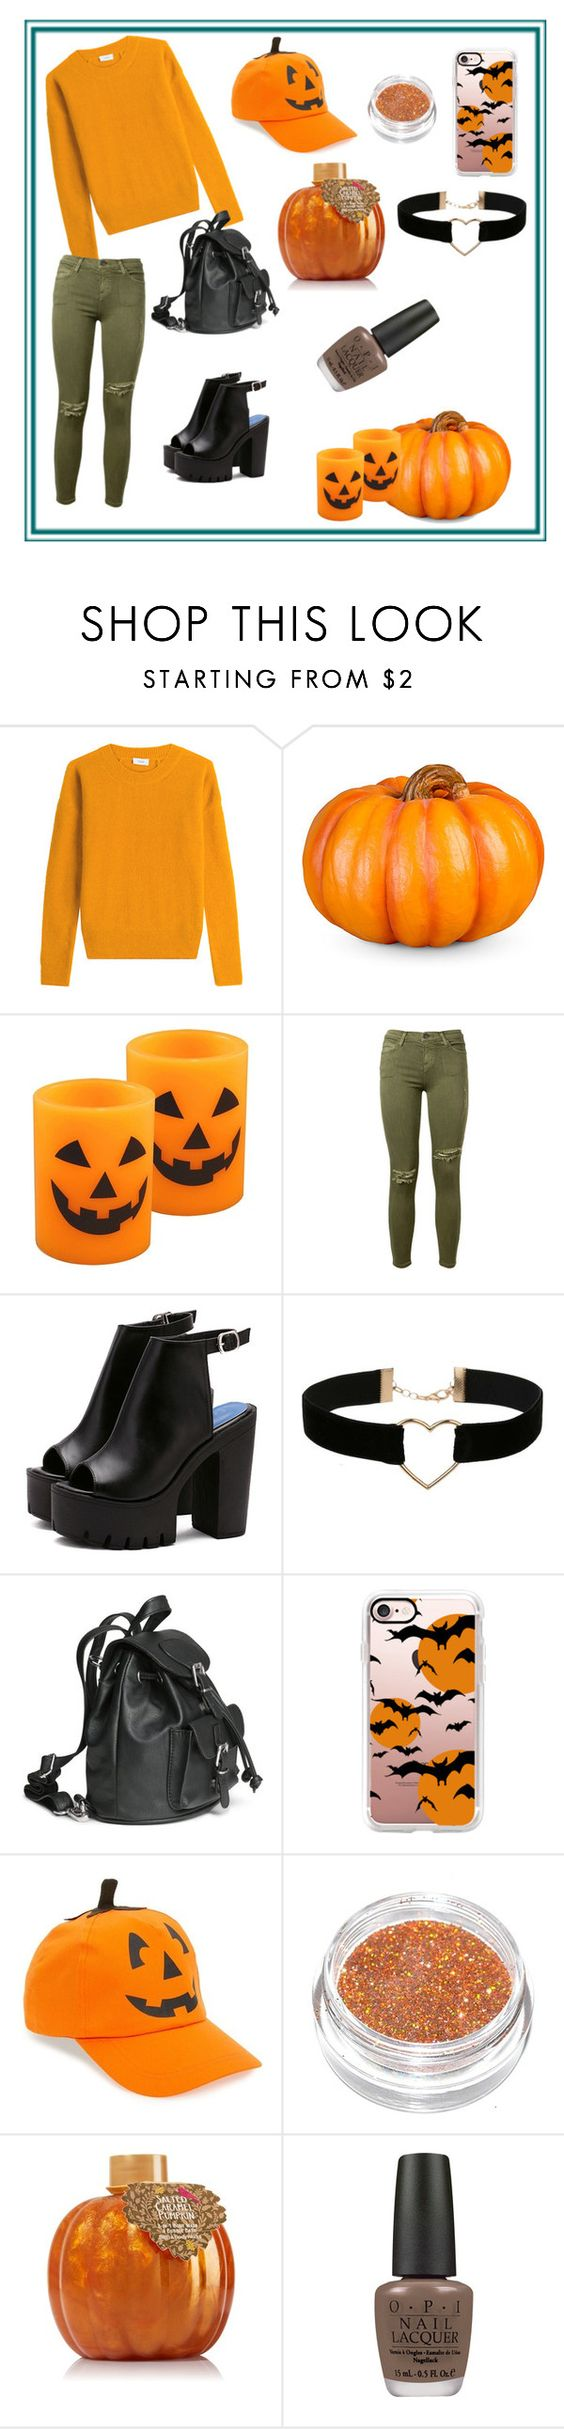 """лол"" by explorer-14579595798 on Polyvore featuring мода, Closed, Improvements, Current/Elliott, Miss Selfridge, Casetify, David & Young и OPI"